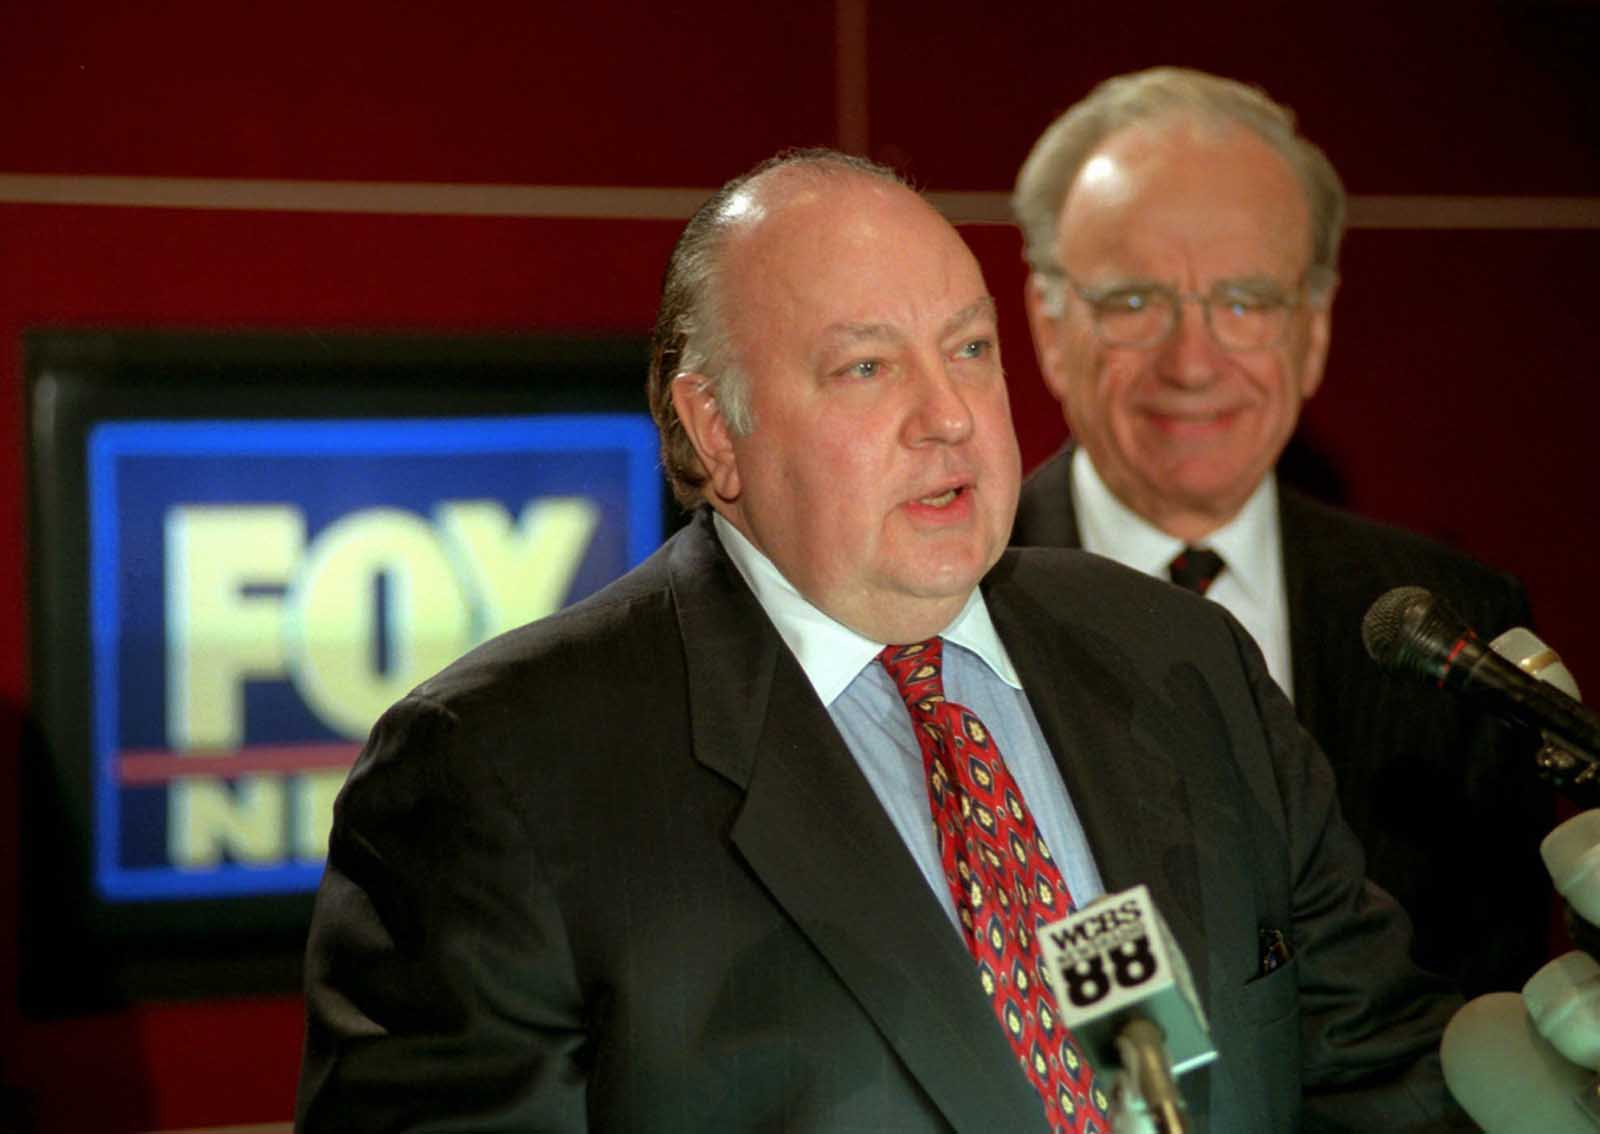 Roger Ailes made a career off of being a divisive figure, but it's time for him to tell his story. Hear his life in his own words in 'Man in the Arena'.